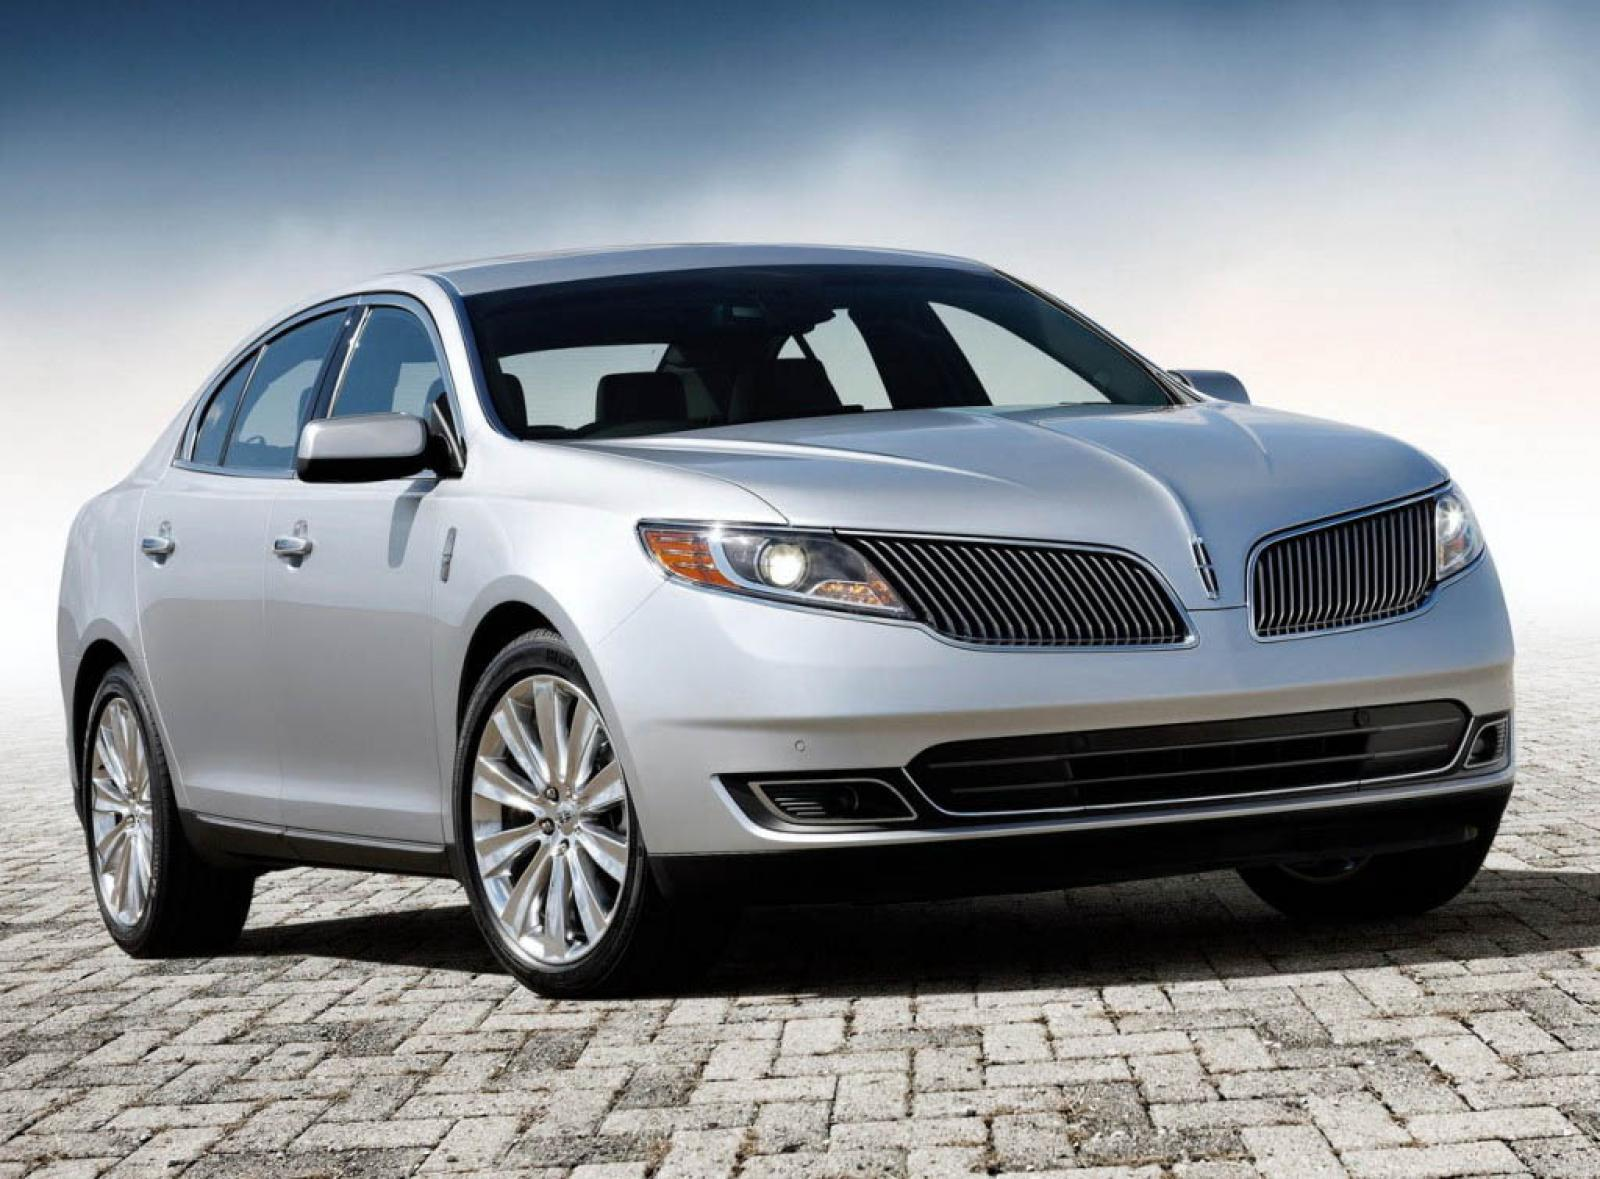 2015 Lincoln Mkx Redesign | www.galleryhip.com - The